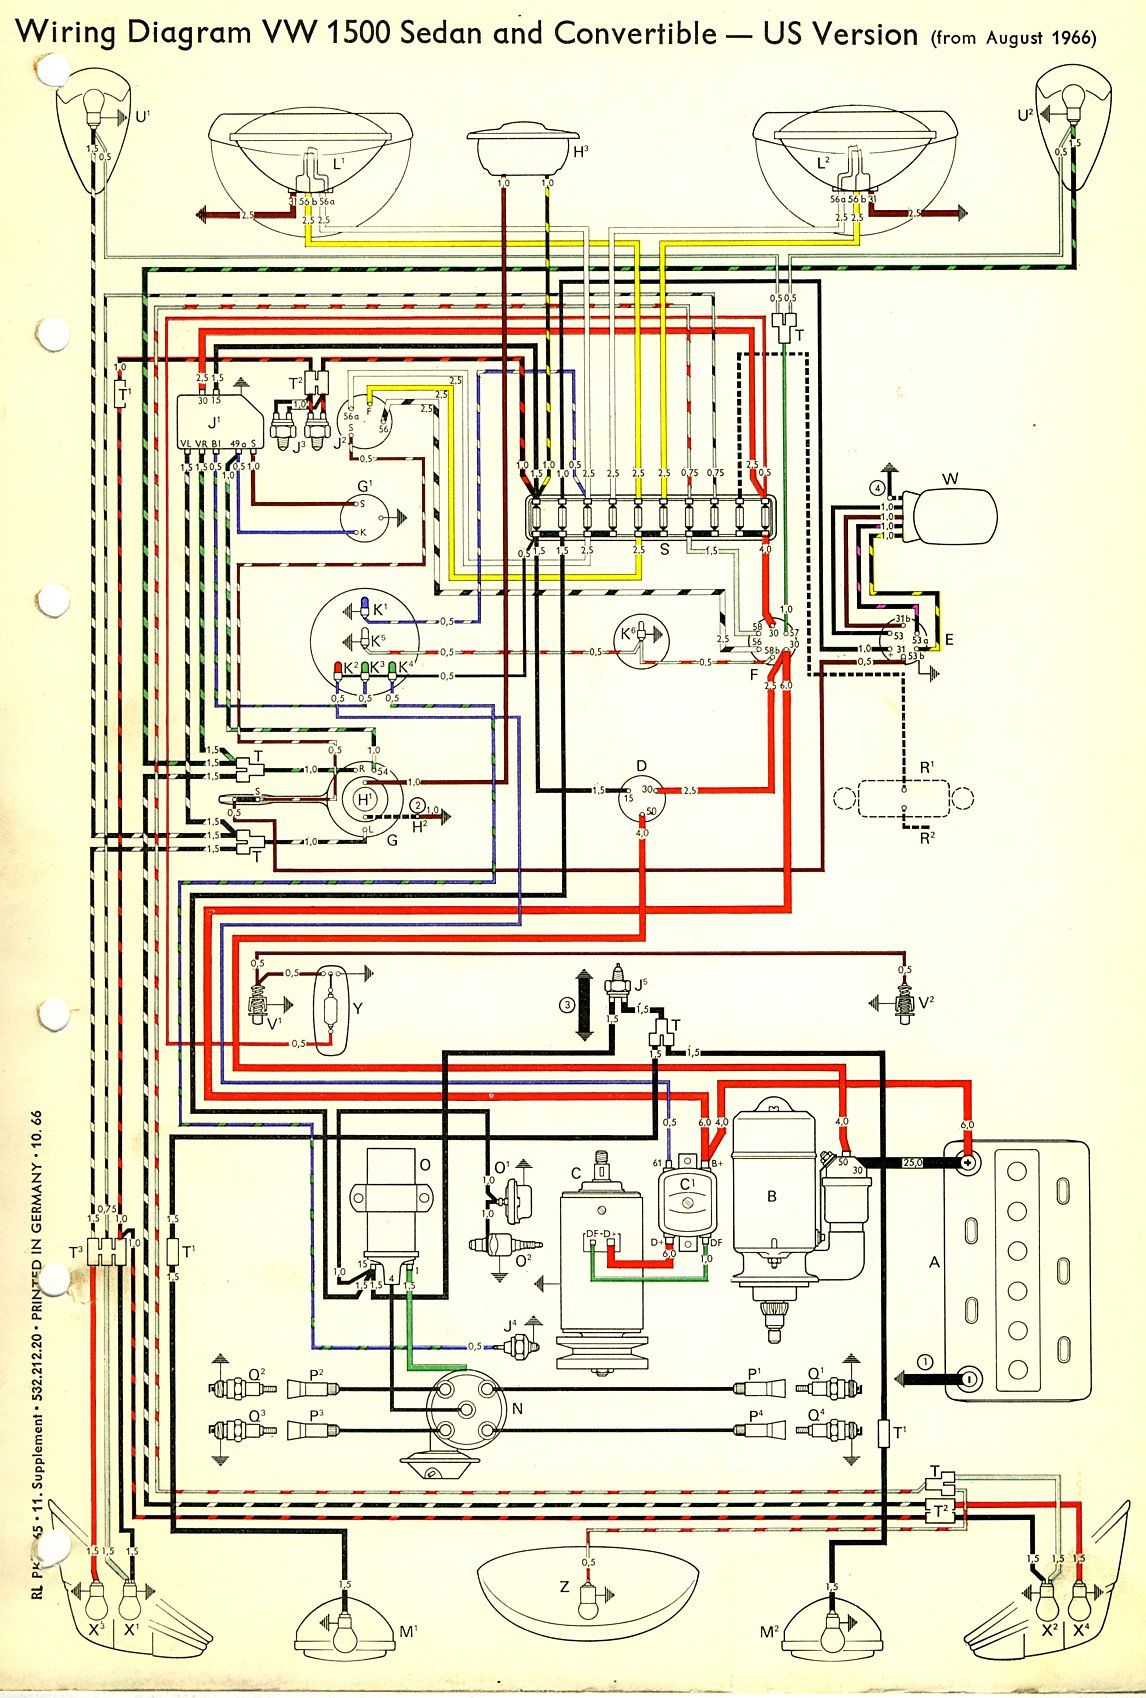 1adf990c0efb617c789fdd21338448b0 1967 beetle wiring diagram (usa) thegoldenbug com best 1967 vw 1971 vw bus wiring diagram at bakdesigns.co